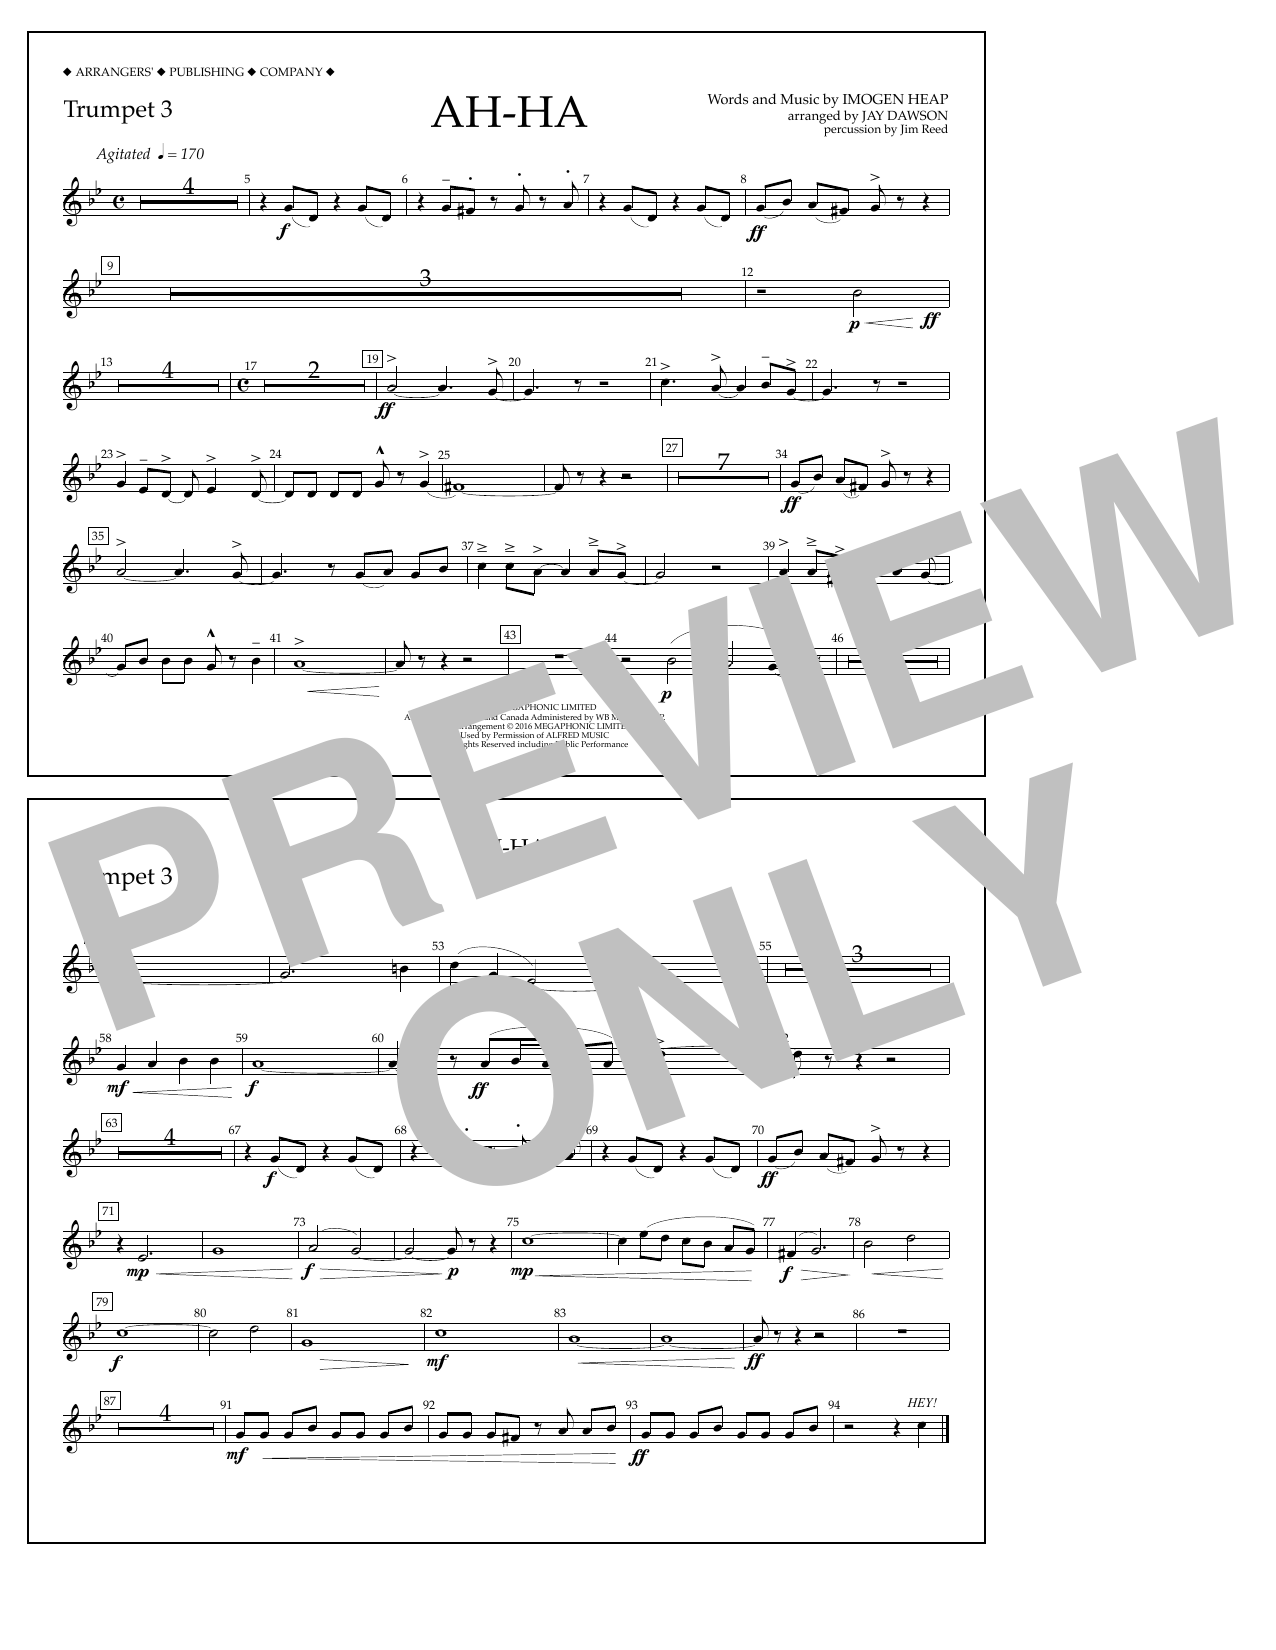 Jay Dawson Ah-ha - Trumpet 3 sheet music notes and chords. Download Printable PDF.